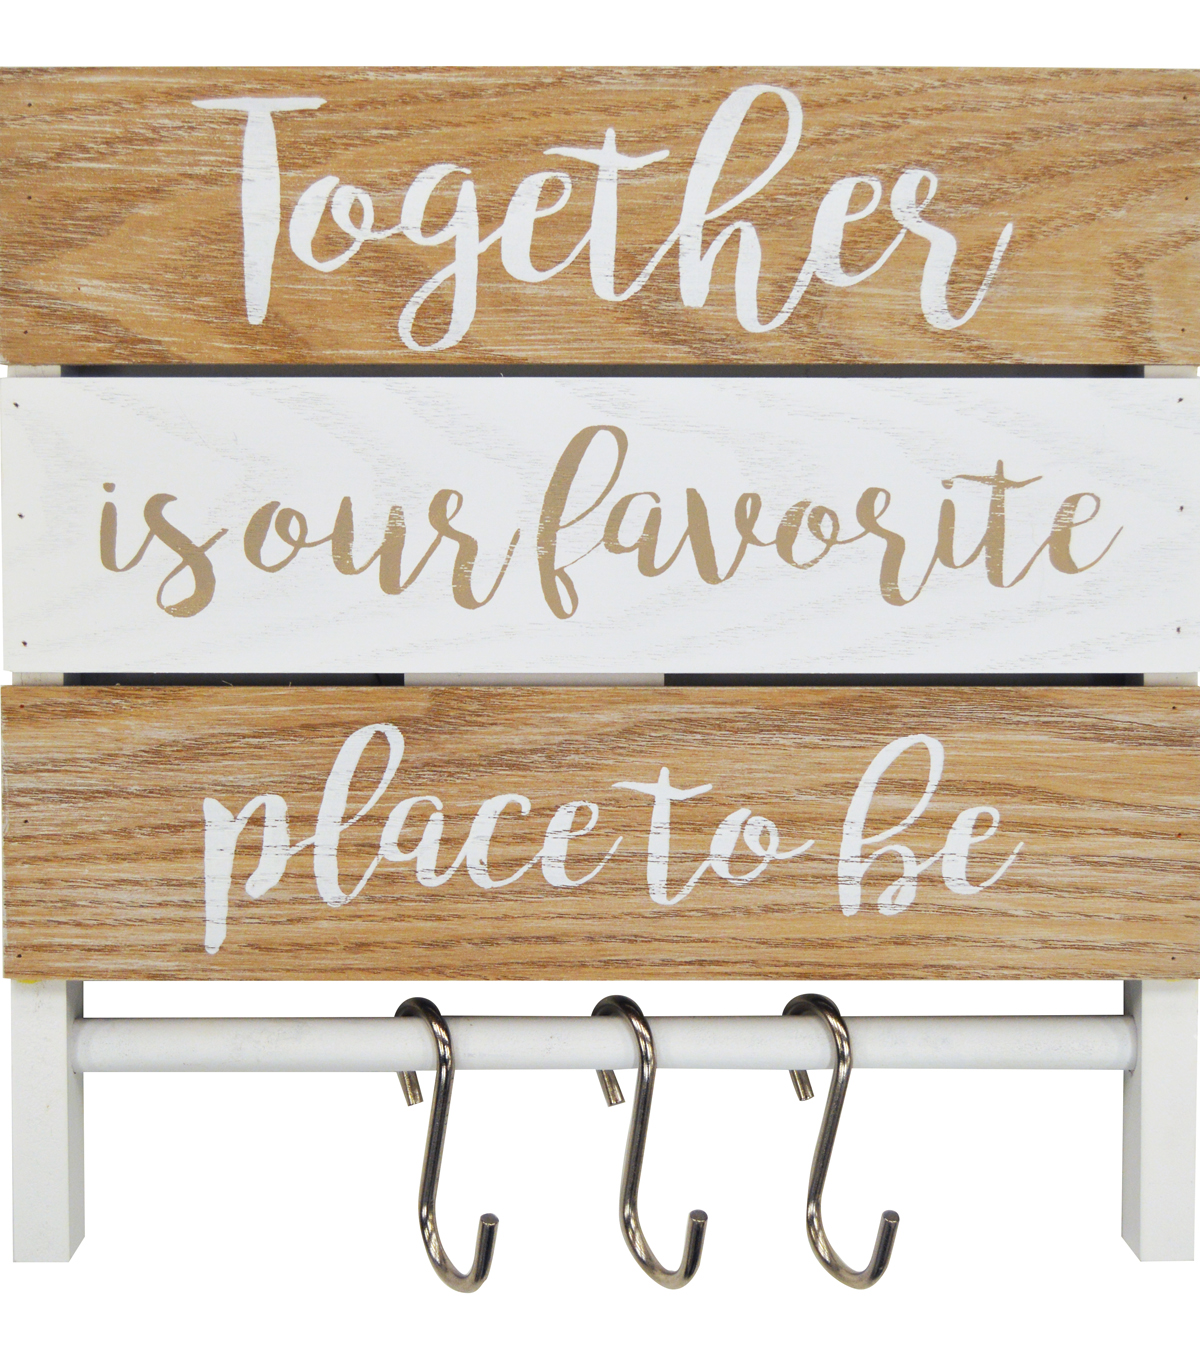 Together is Our Favorite Place To Be Plank Decor with Hooks